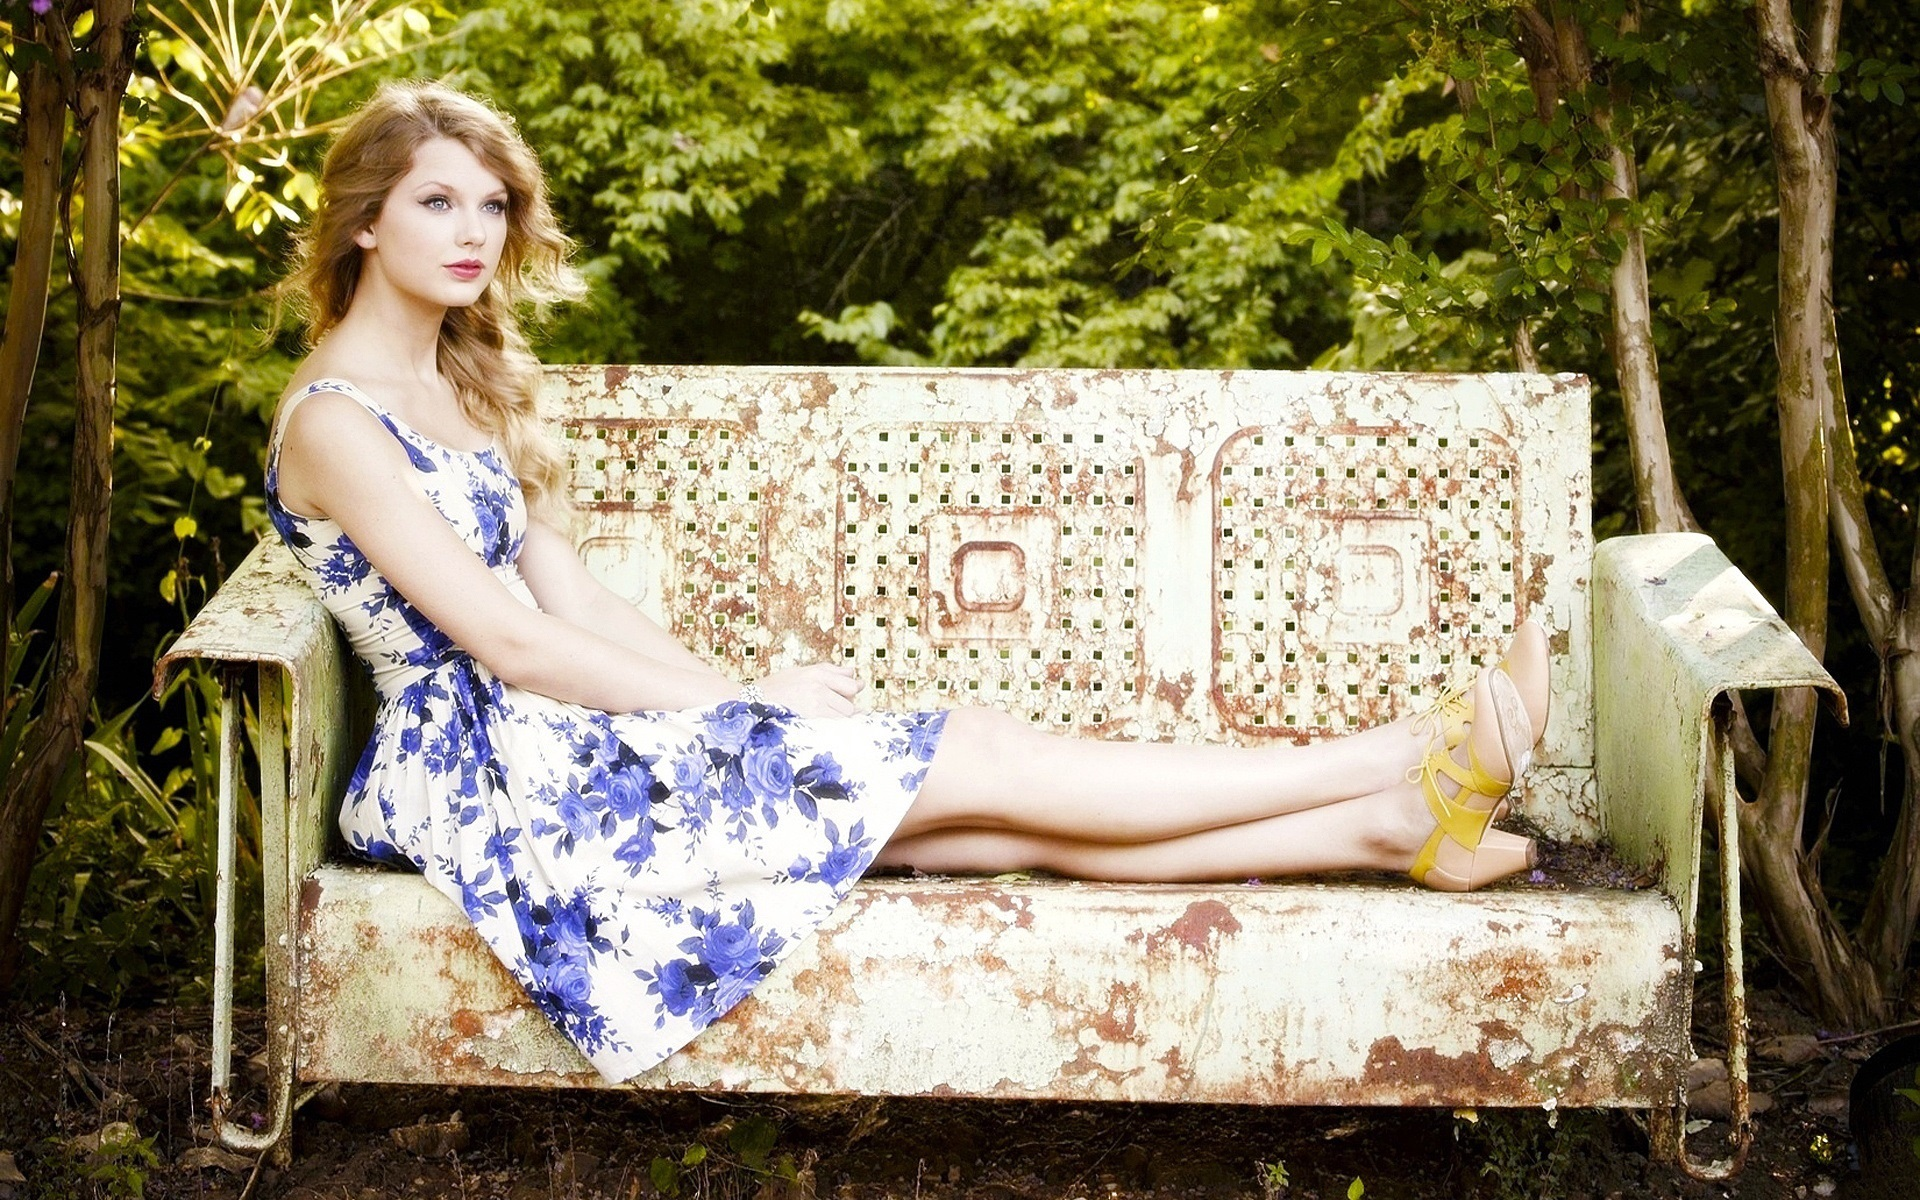 Wallpaper Taylor Swift 74 1920x1200 Hd Picture Image